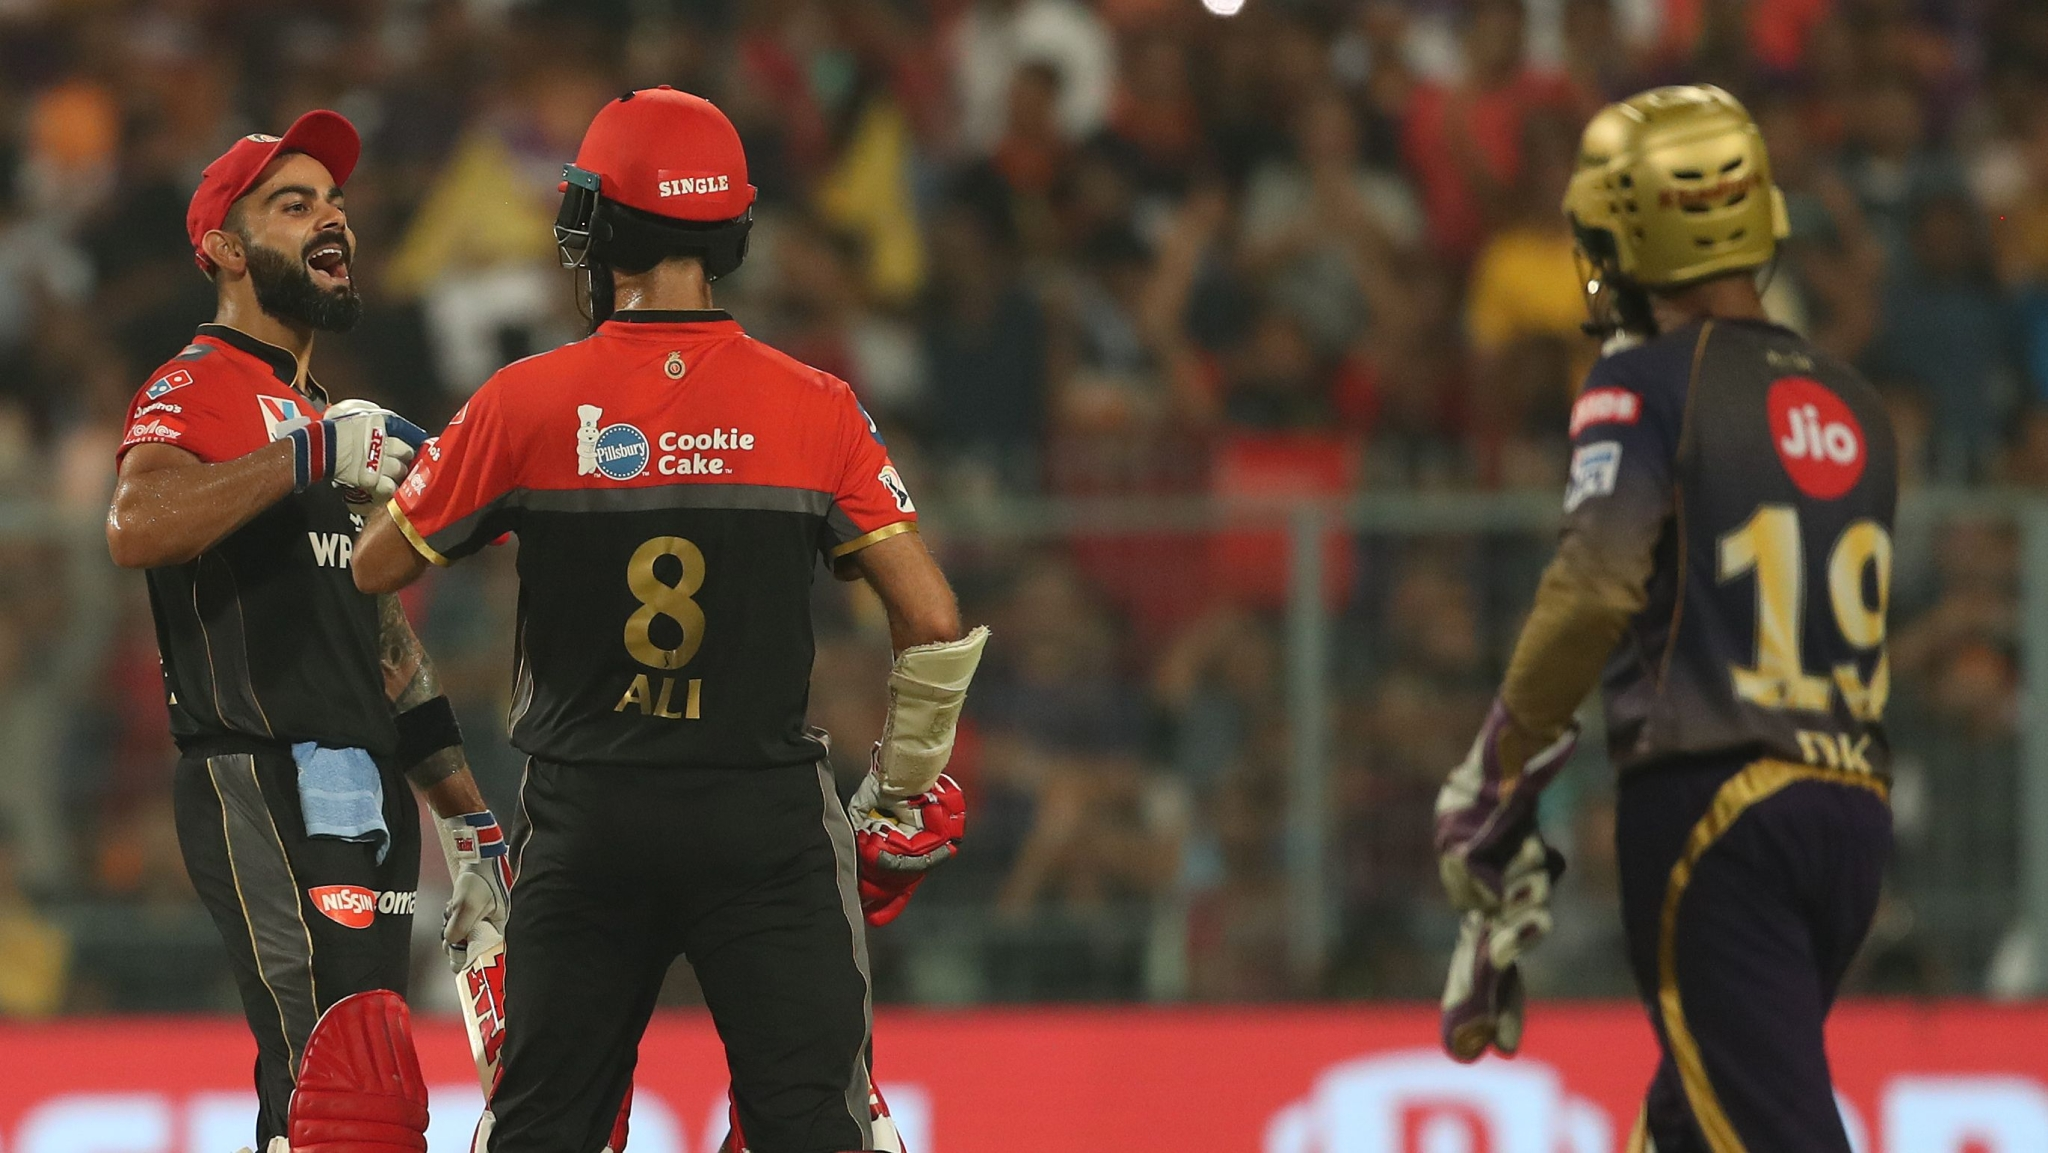 Skipper Kohli Slams a Century to Power RCB to 213/4 Against KKR